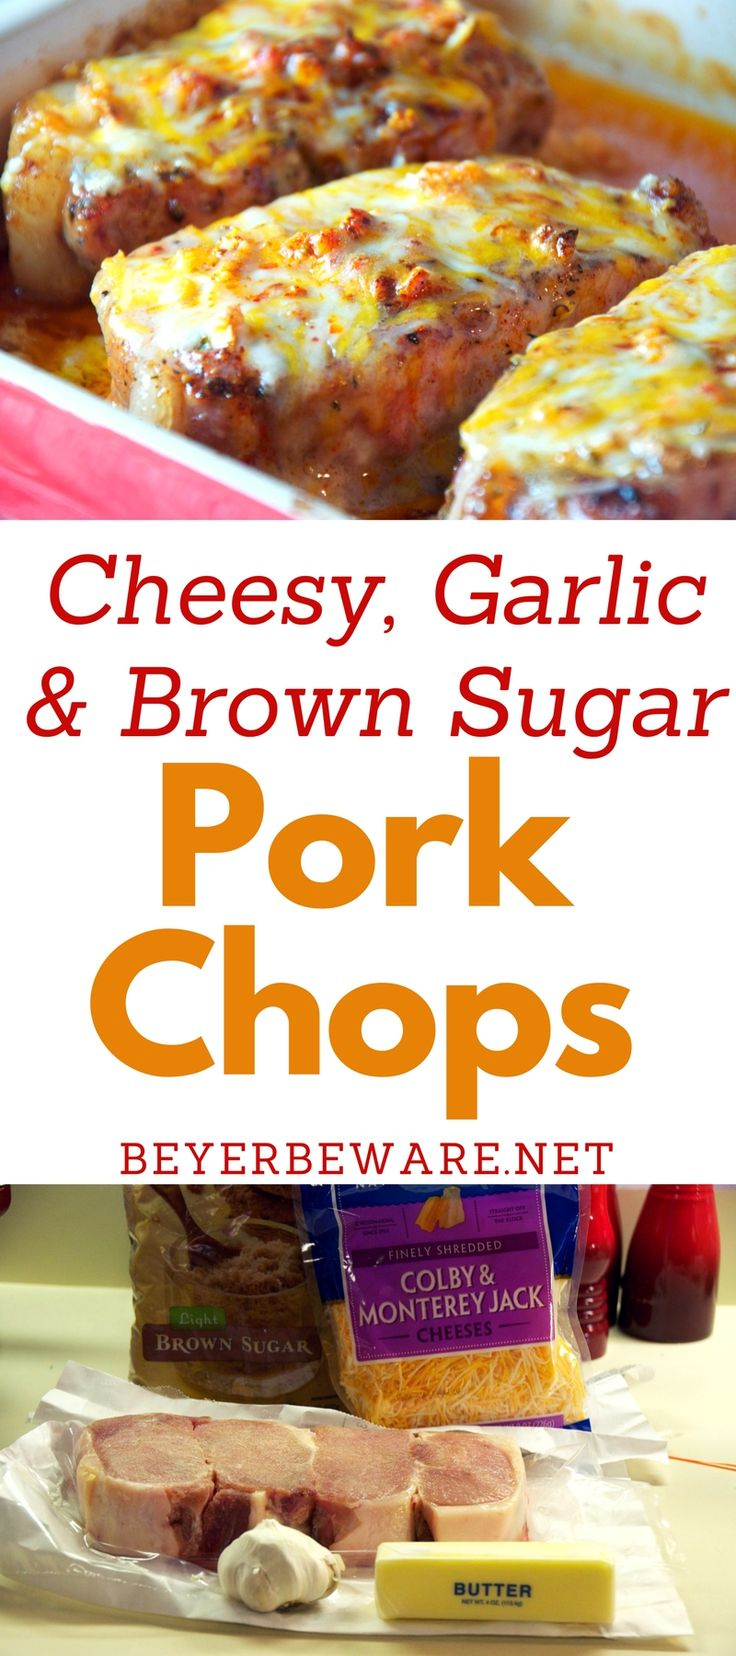 A quick baked pork chop recipe that is full of flavor from the brown sugar and g…